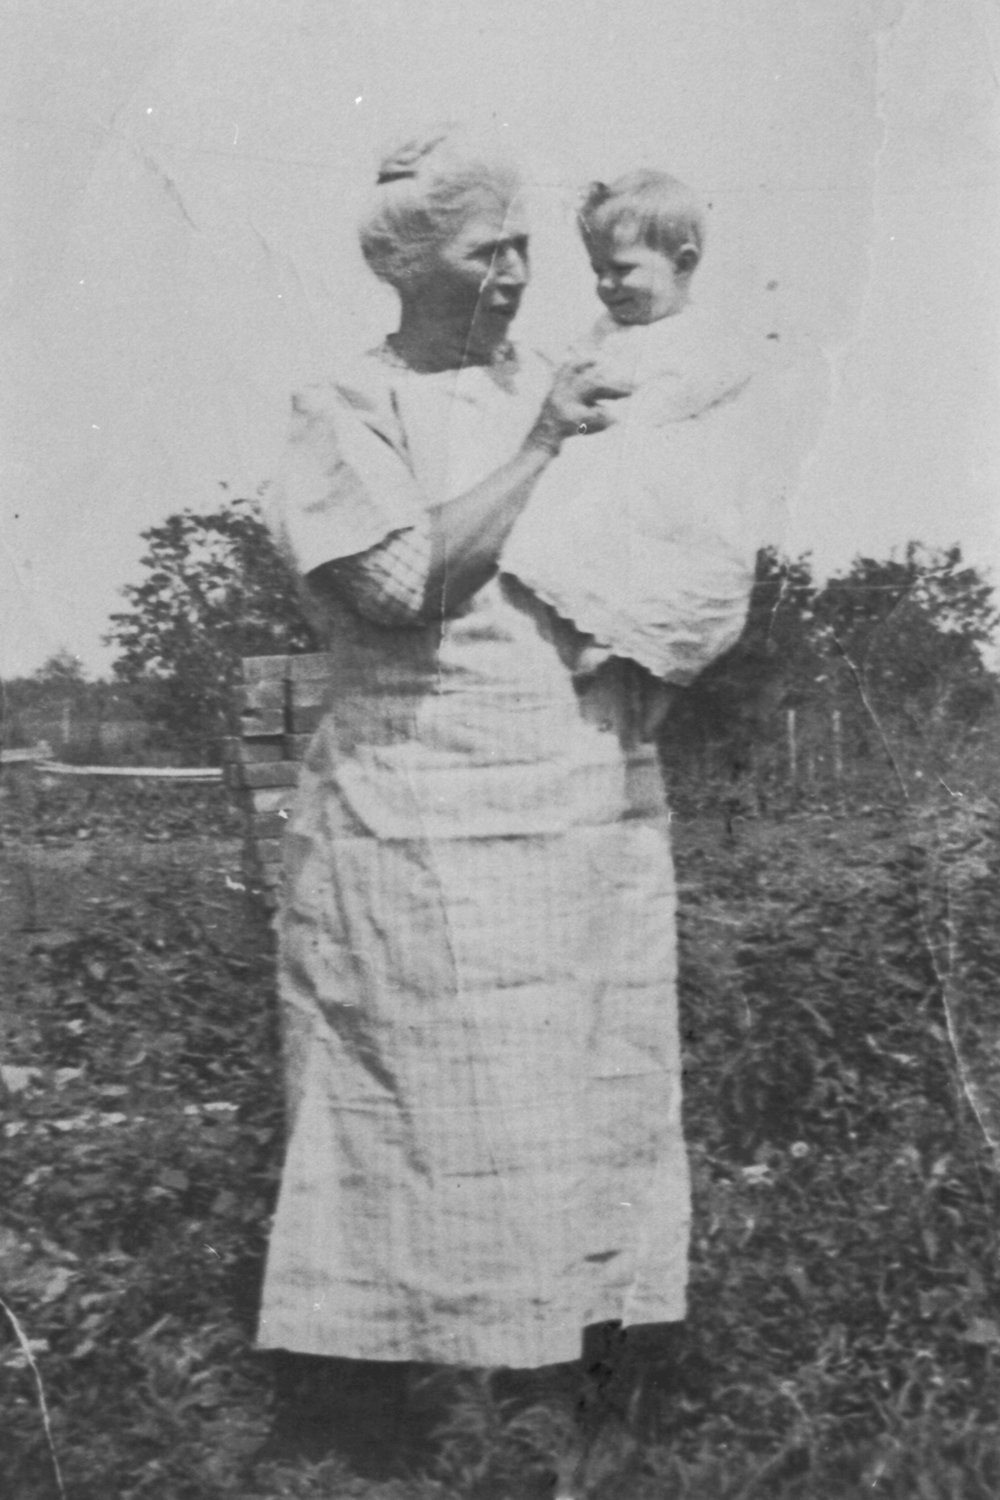 - My Mom with her Aunt Mary, who lived with my Mom's family on their central Alberta farm (1925).